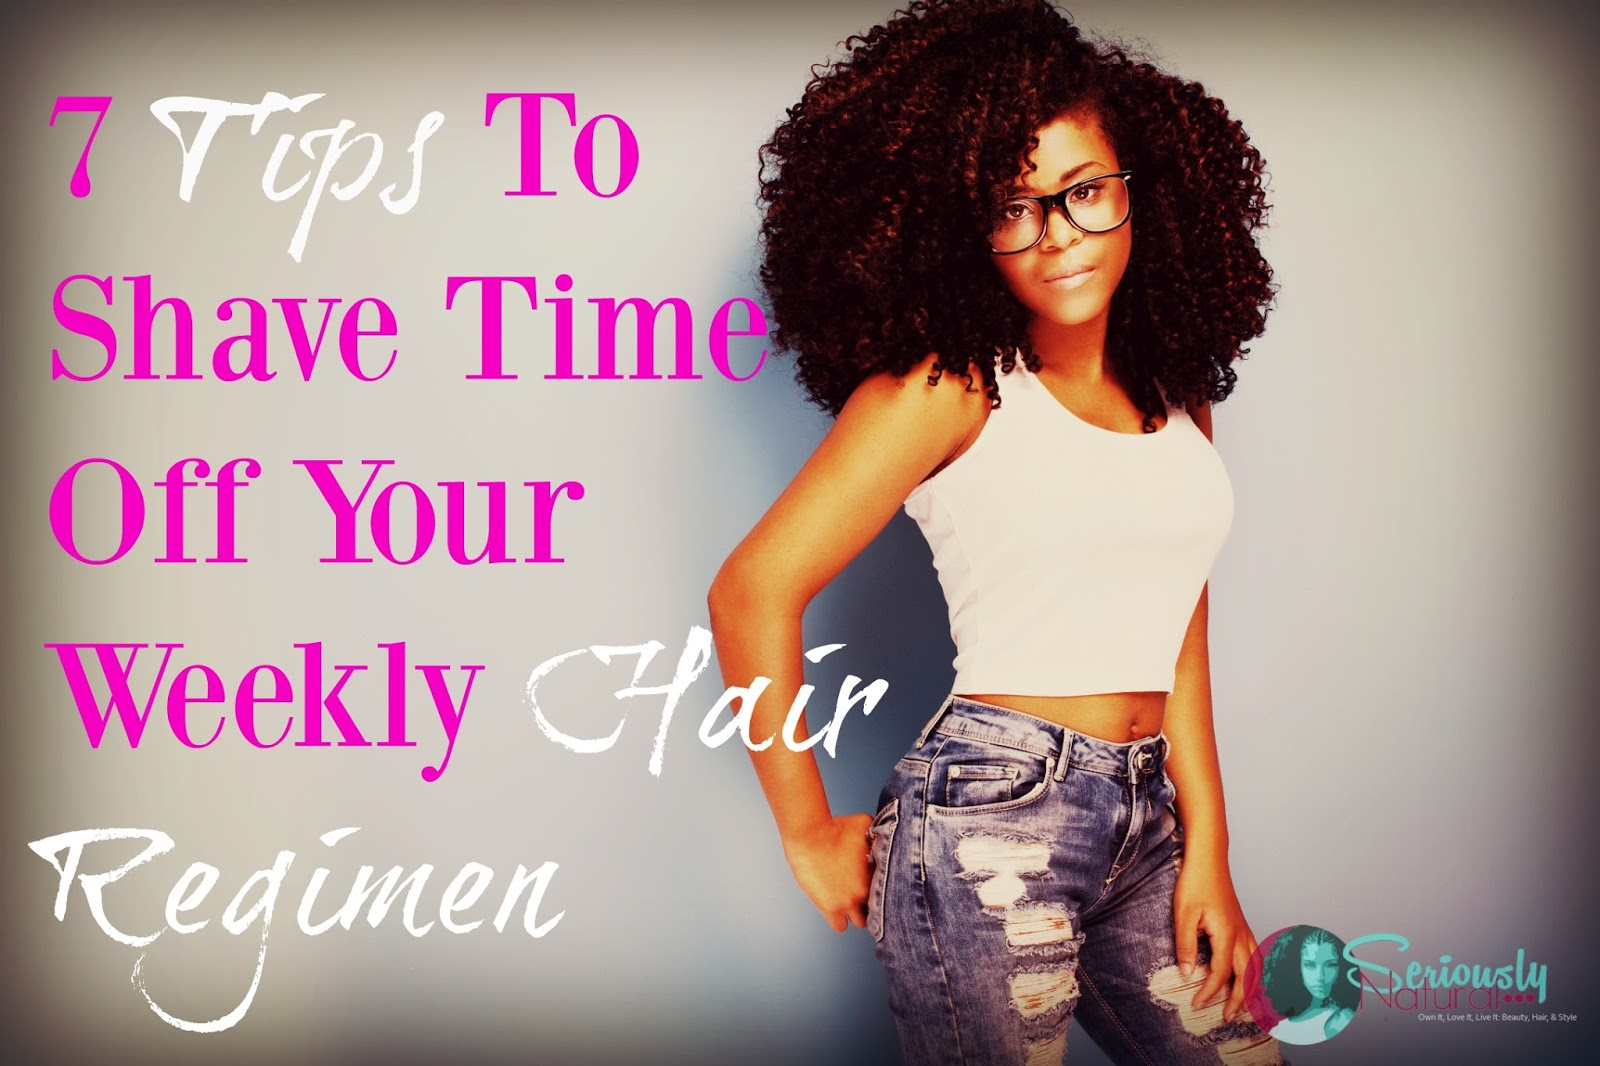 7 Tips to Shave Time off Your Weekly Hair Regimen